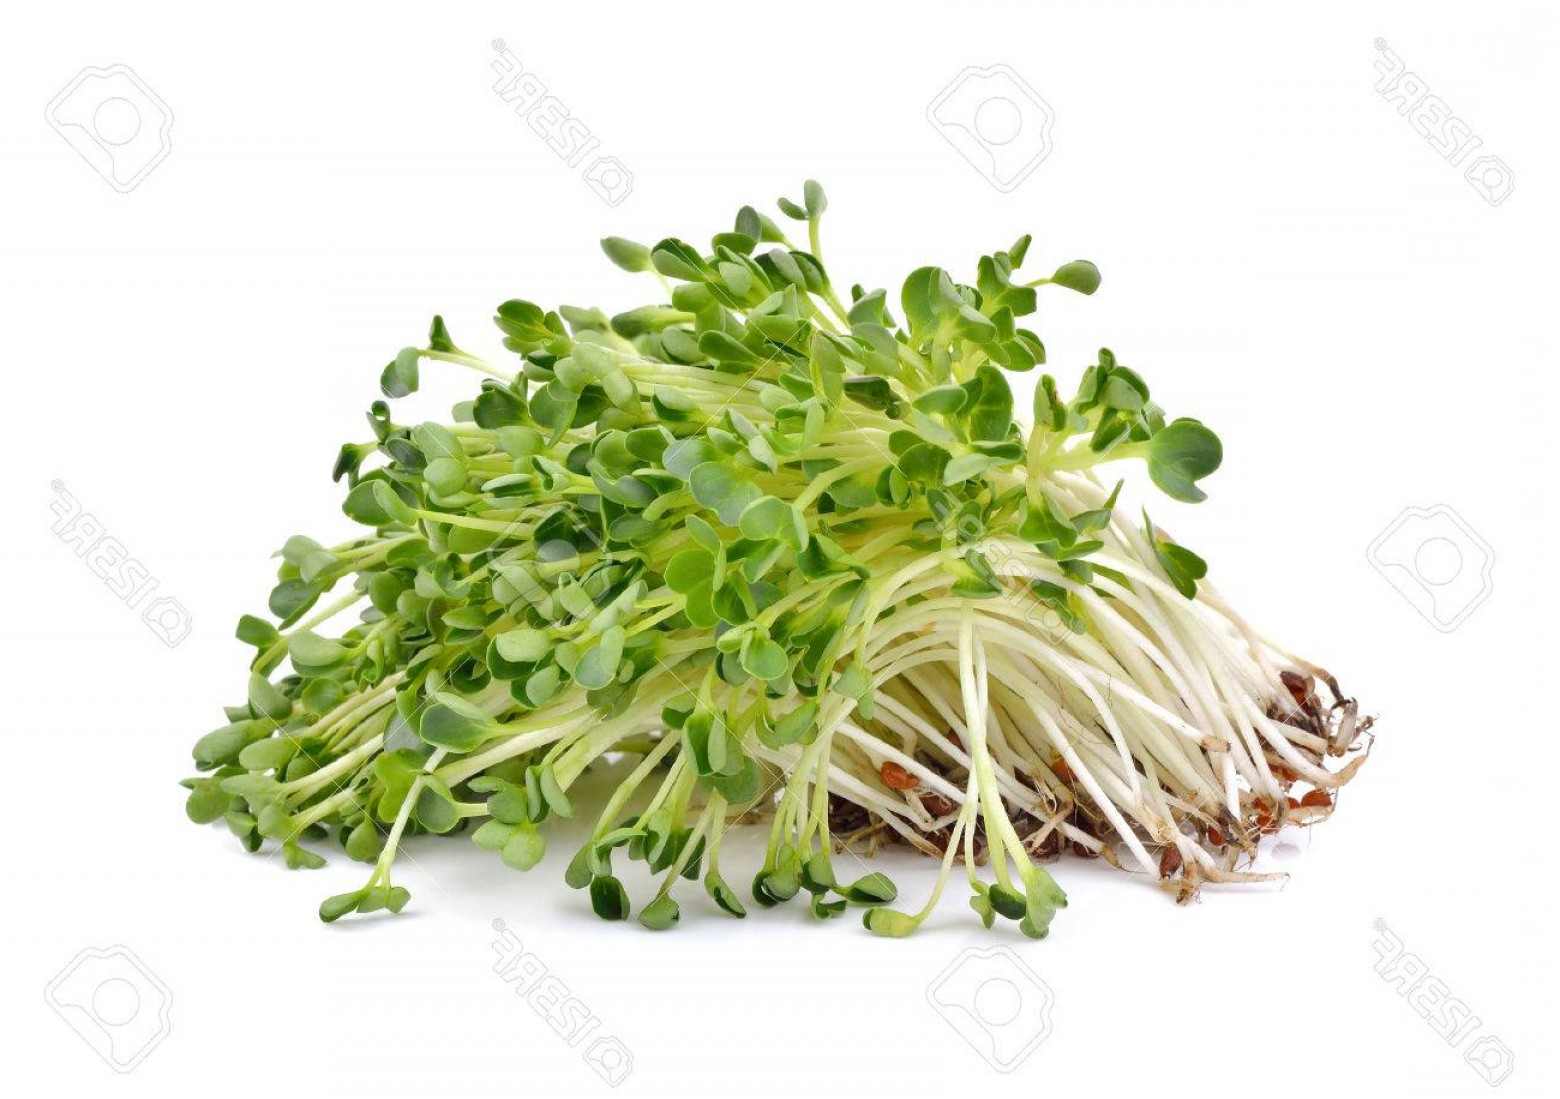 Alfalfa Sprouts Vector: Photoheap Of Alfalfa Sprouts On White Background